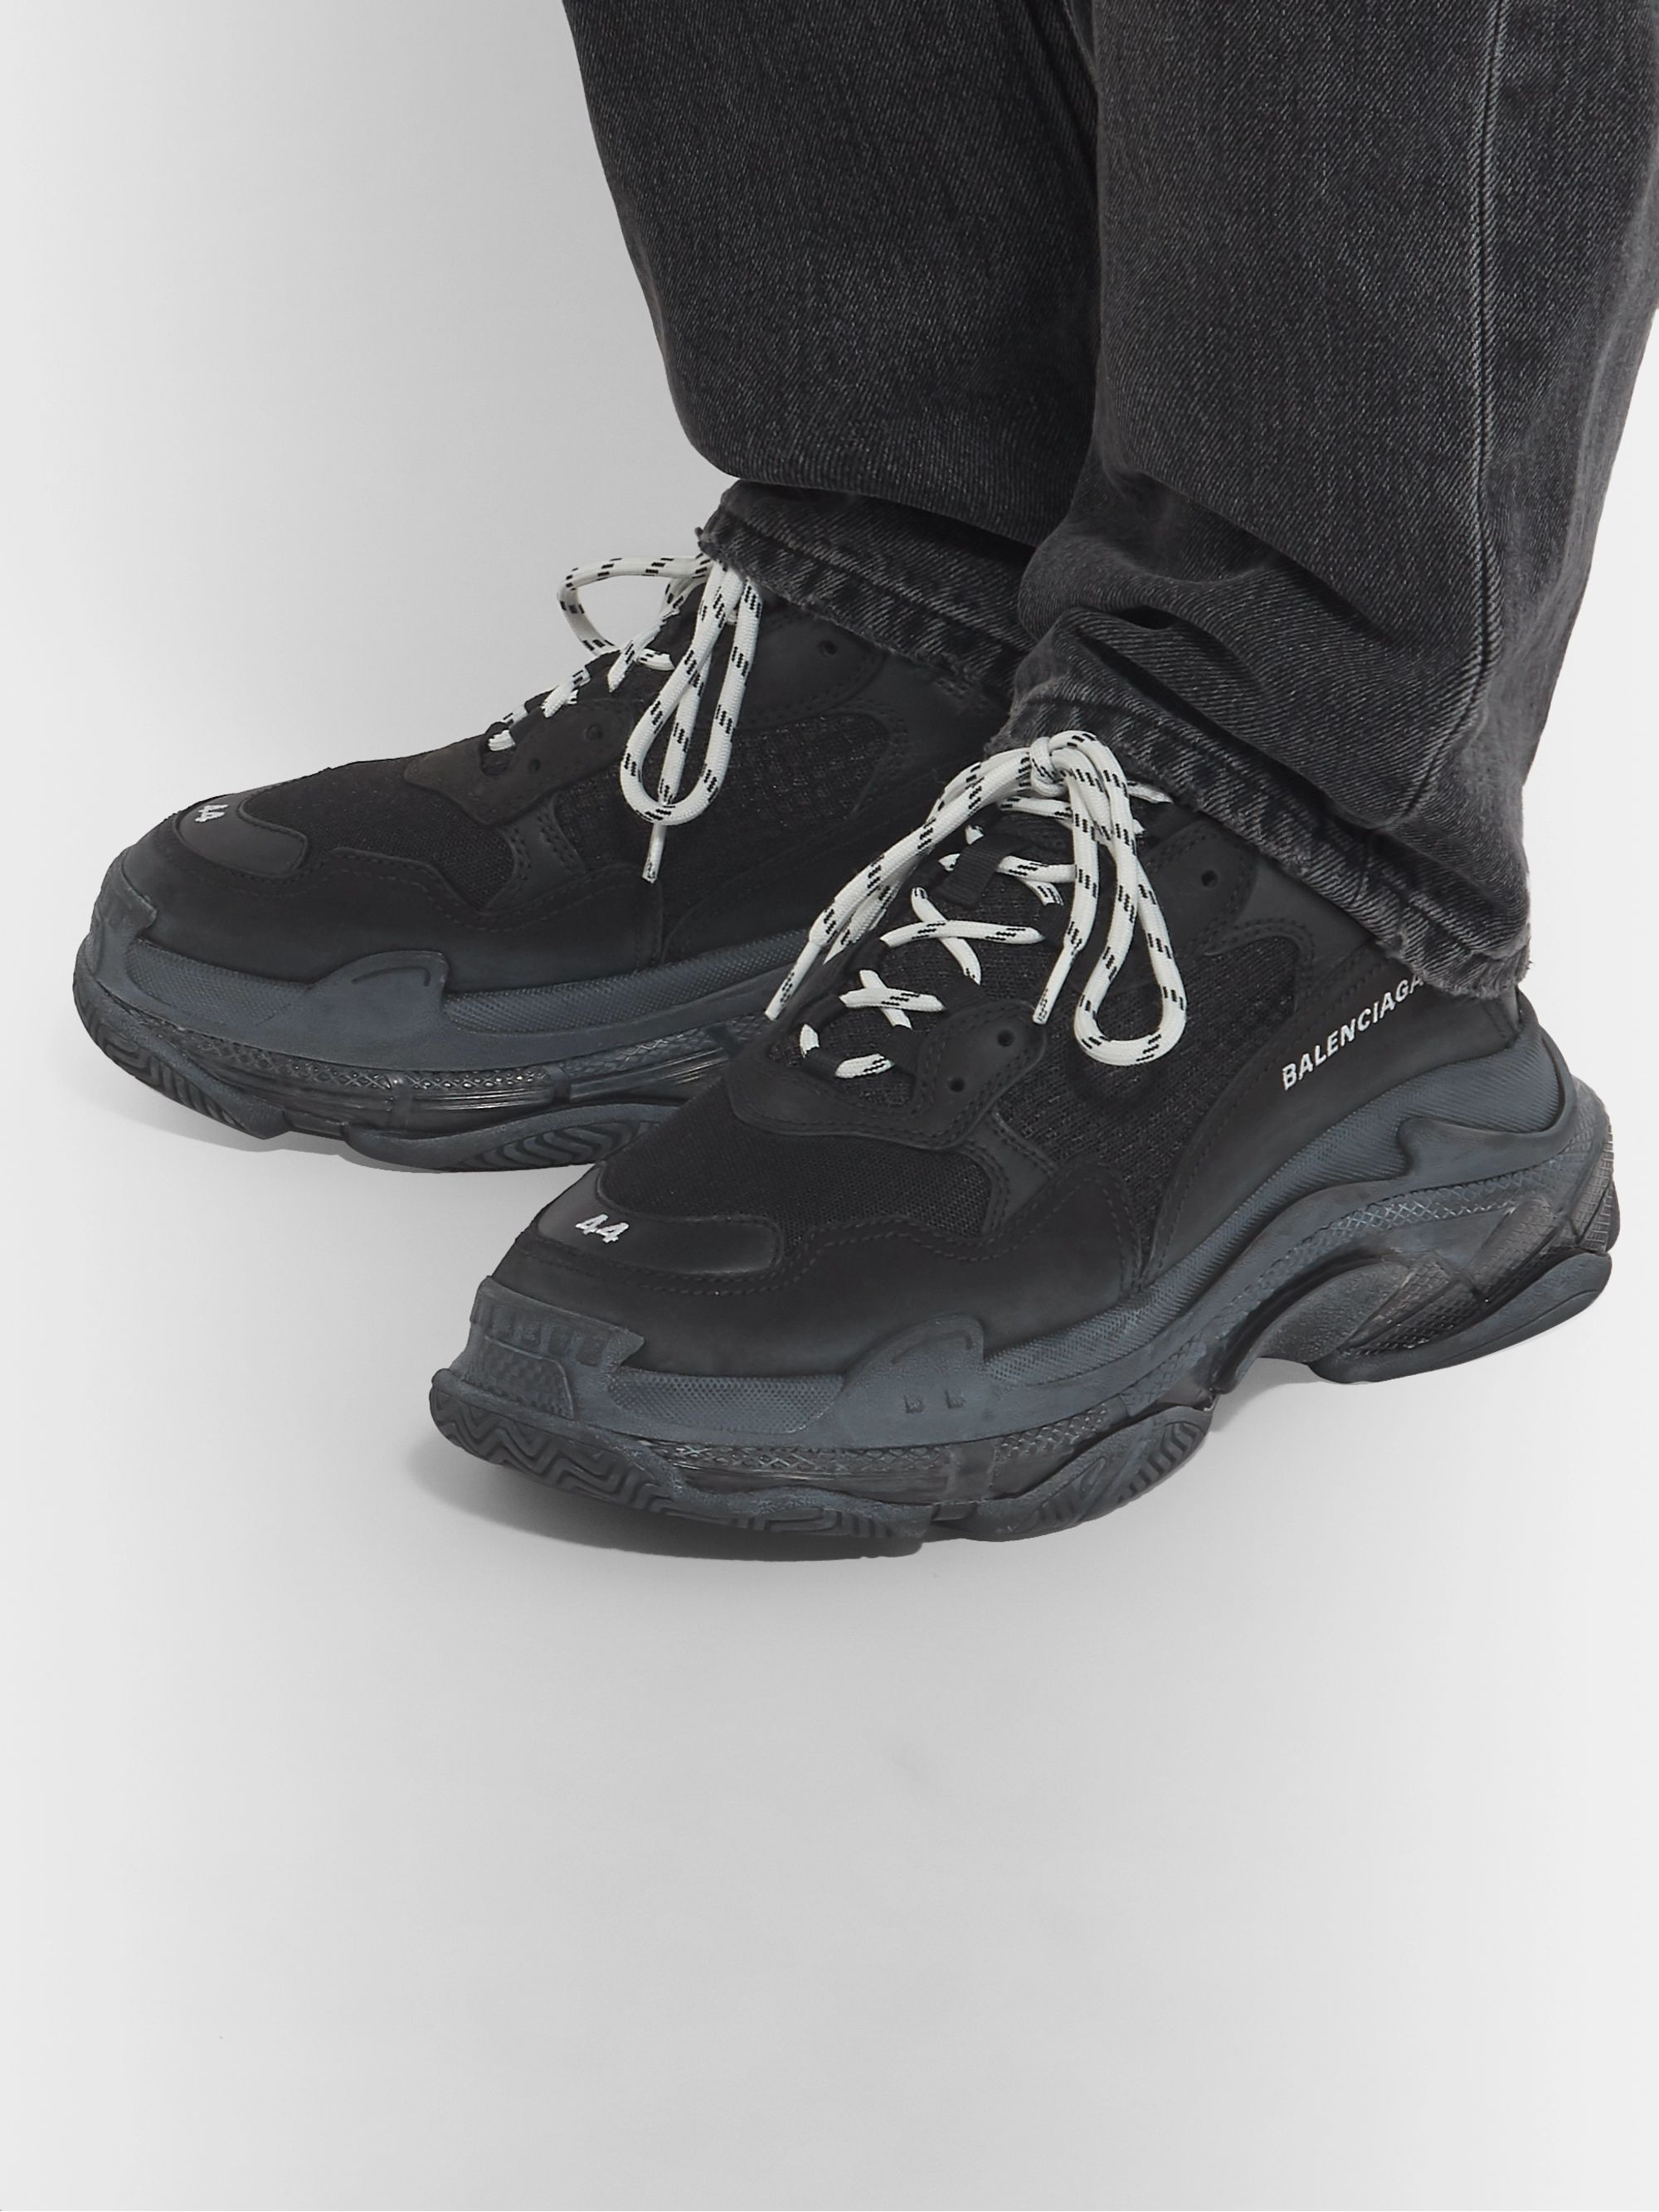 Balenciaga Triple S Triple Black Clear sole ALL SiZES